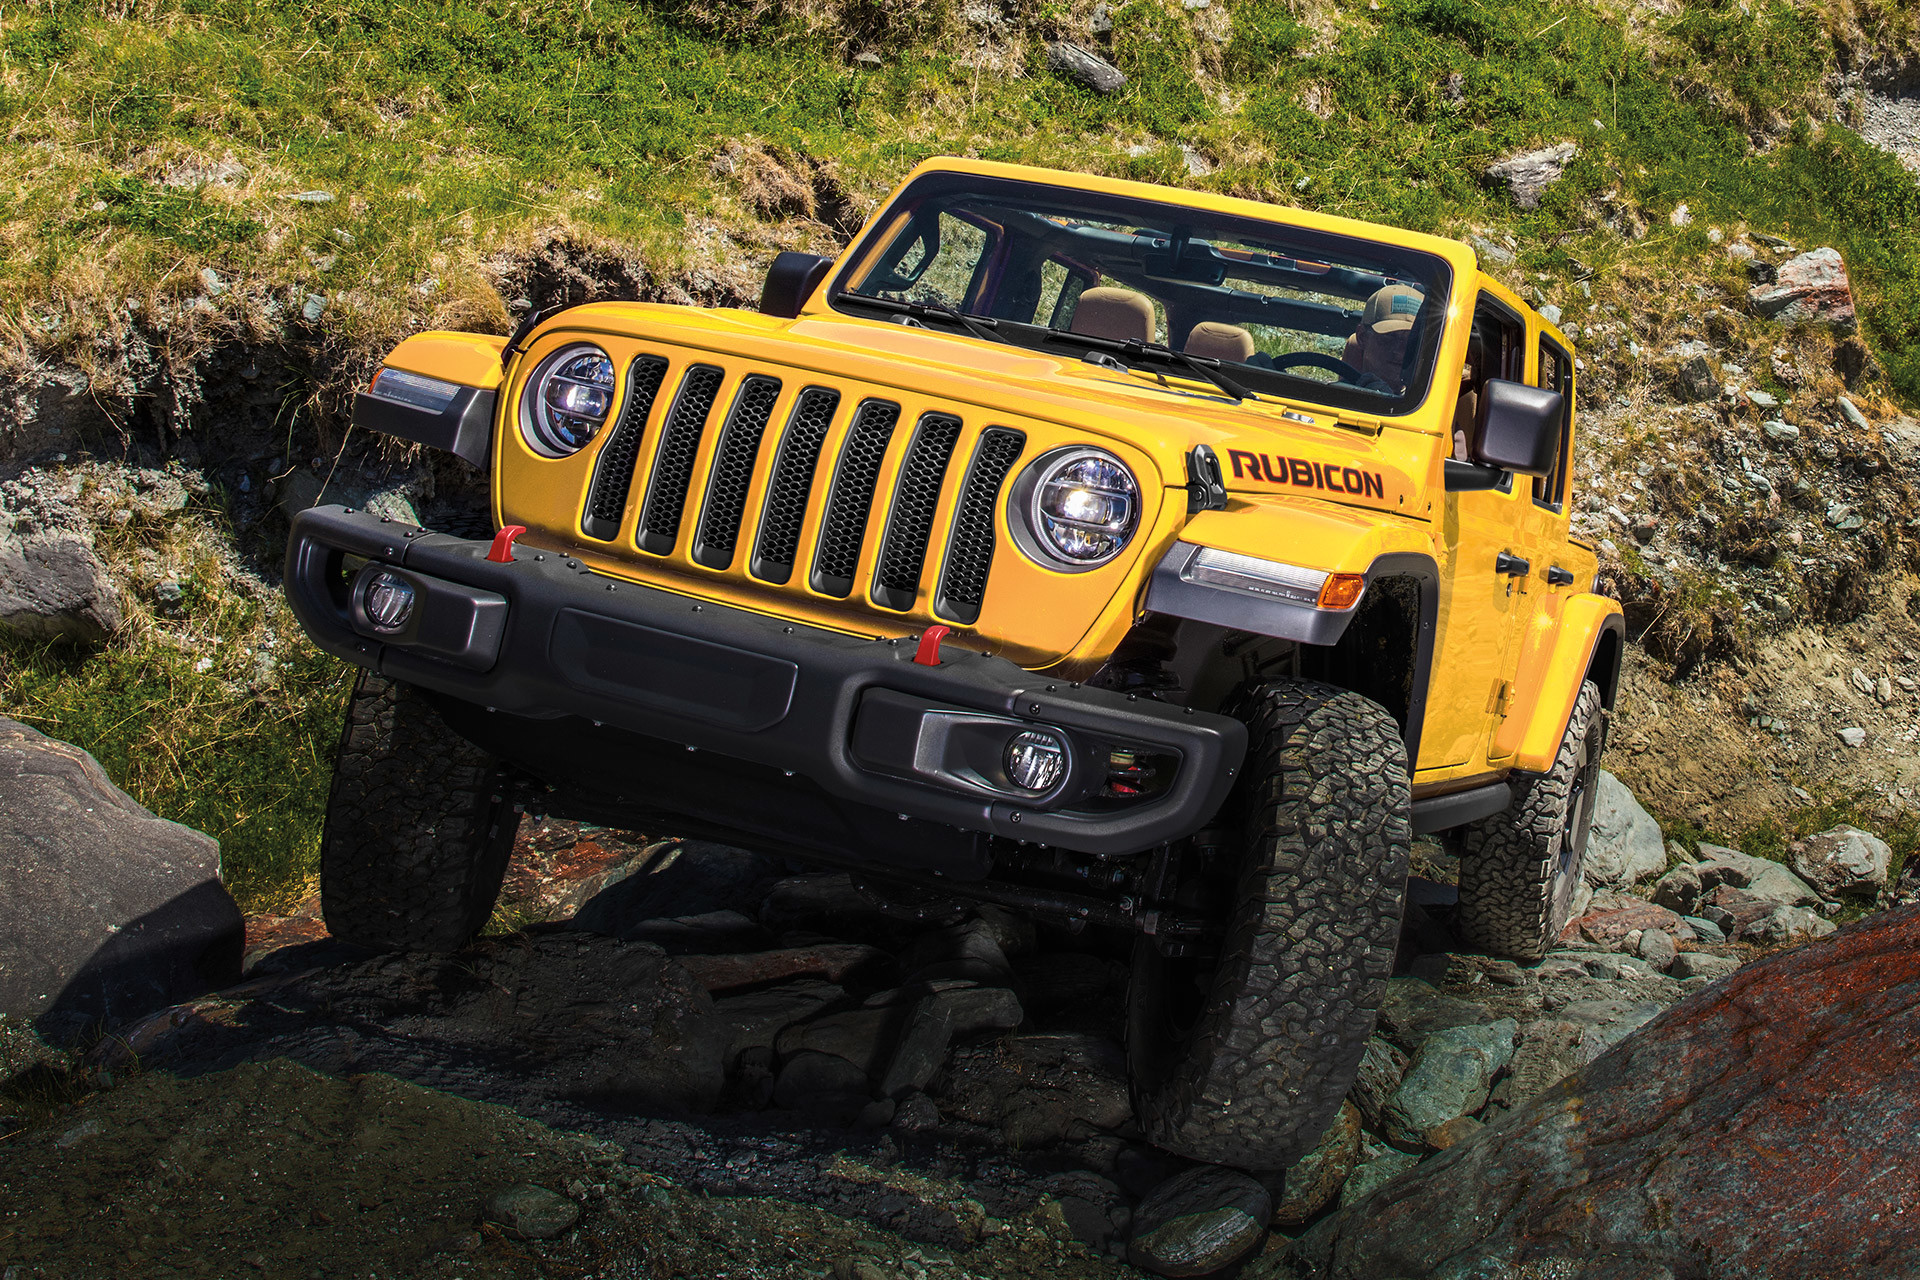 2019 Jeep Wrangler exterior, shown in red driving over rocks